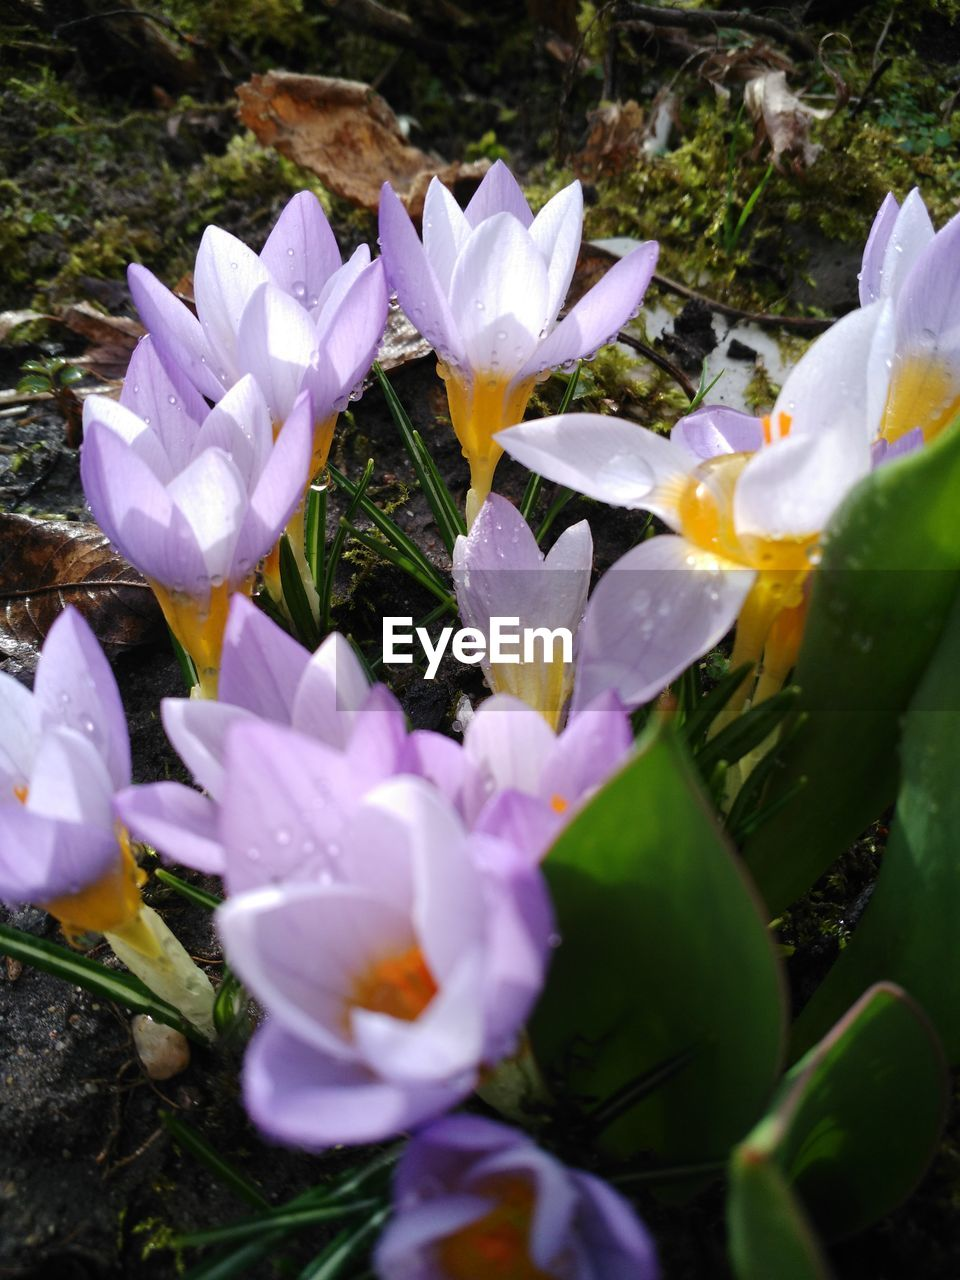 flower, petal, beauty in nature, fragility, nature, growth, freshness, flower head, outdoors, day, blooming, plant, purple, no people, water, close-up, crocus